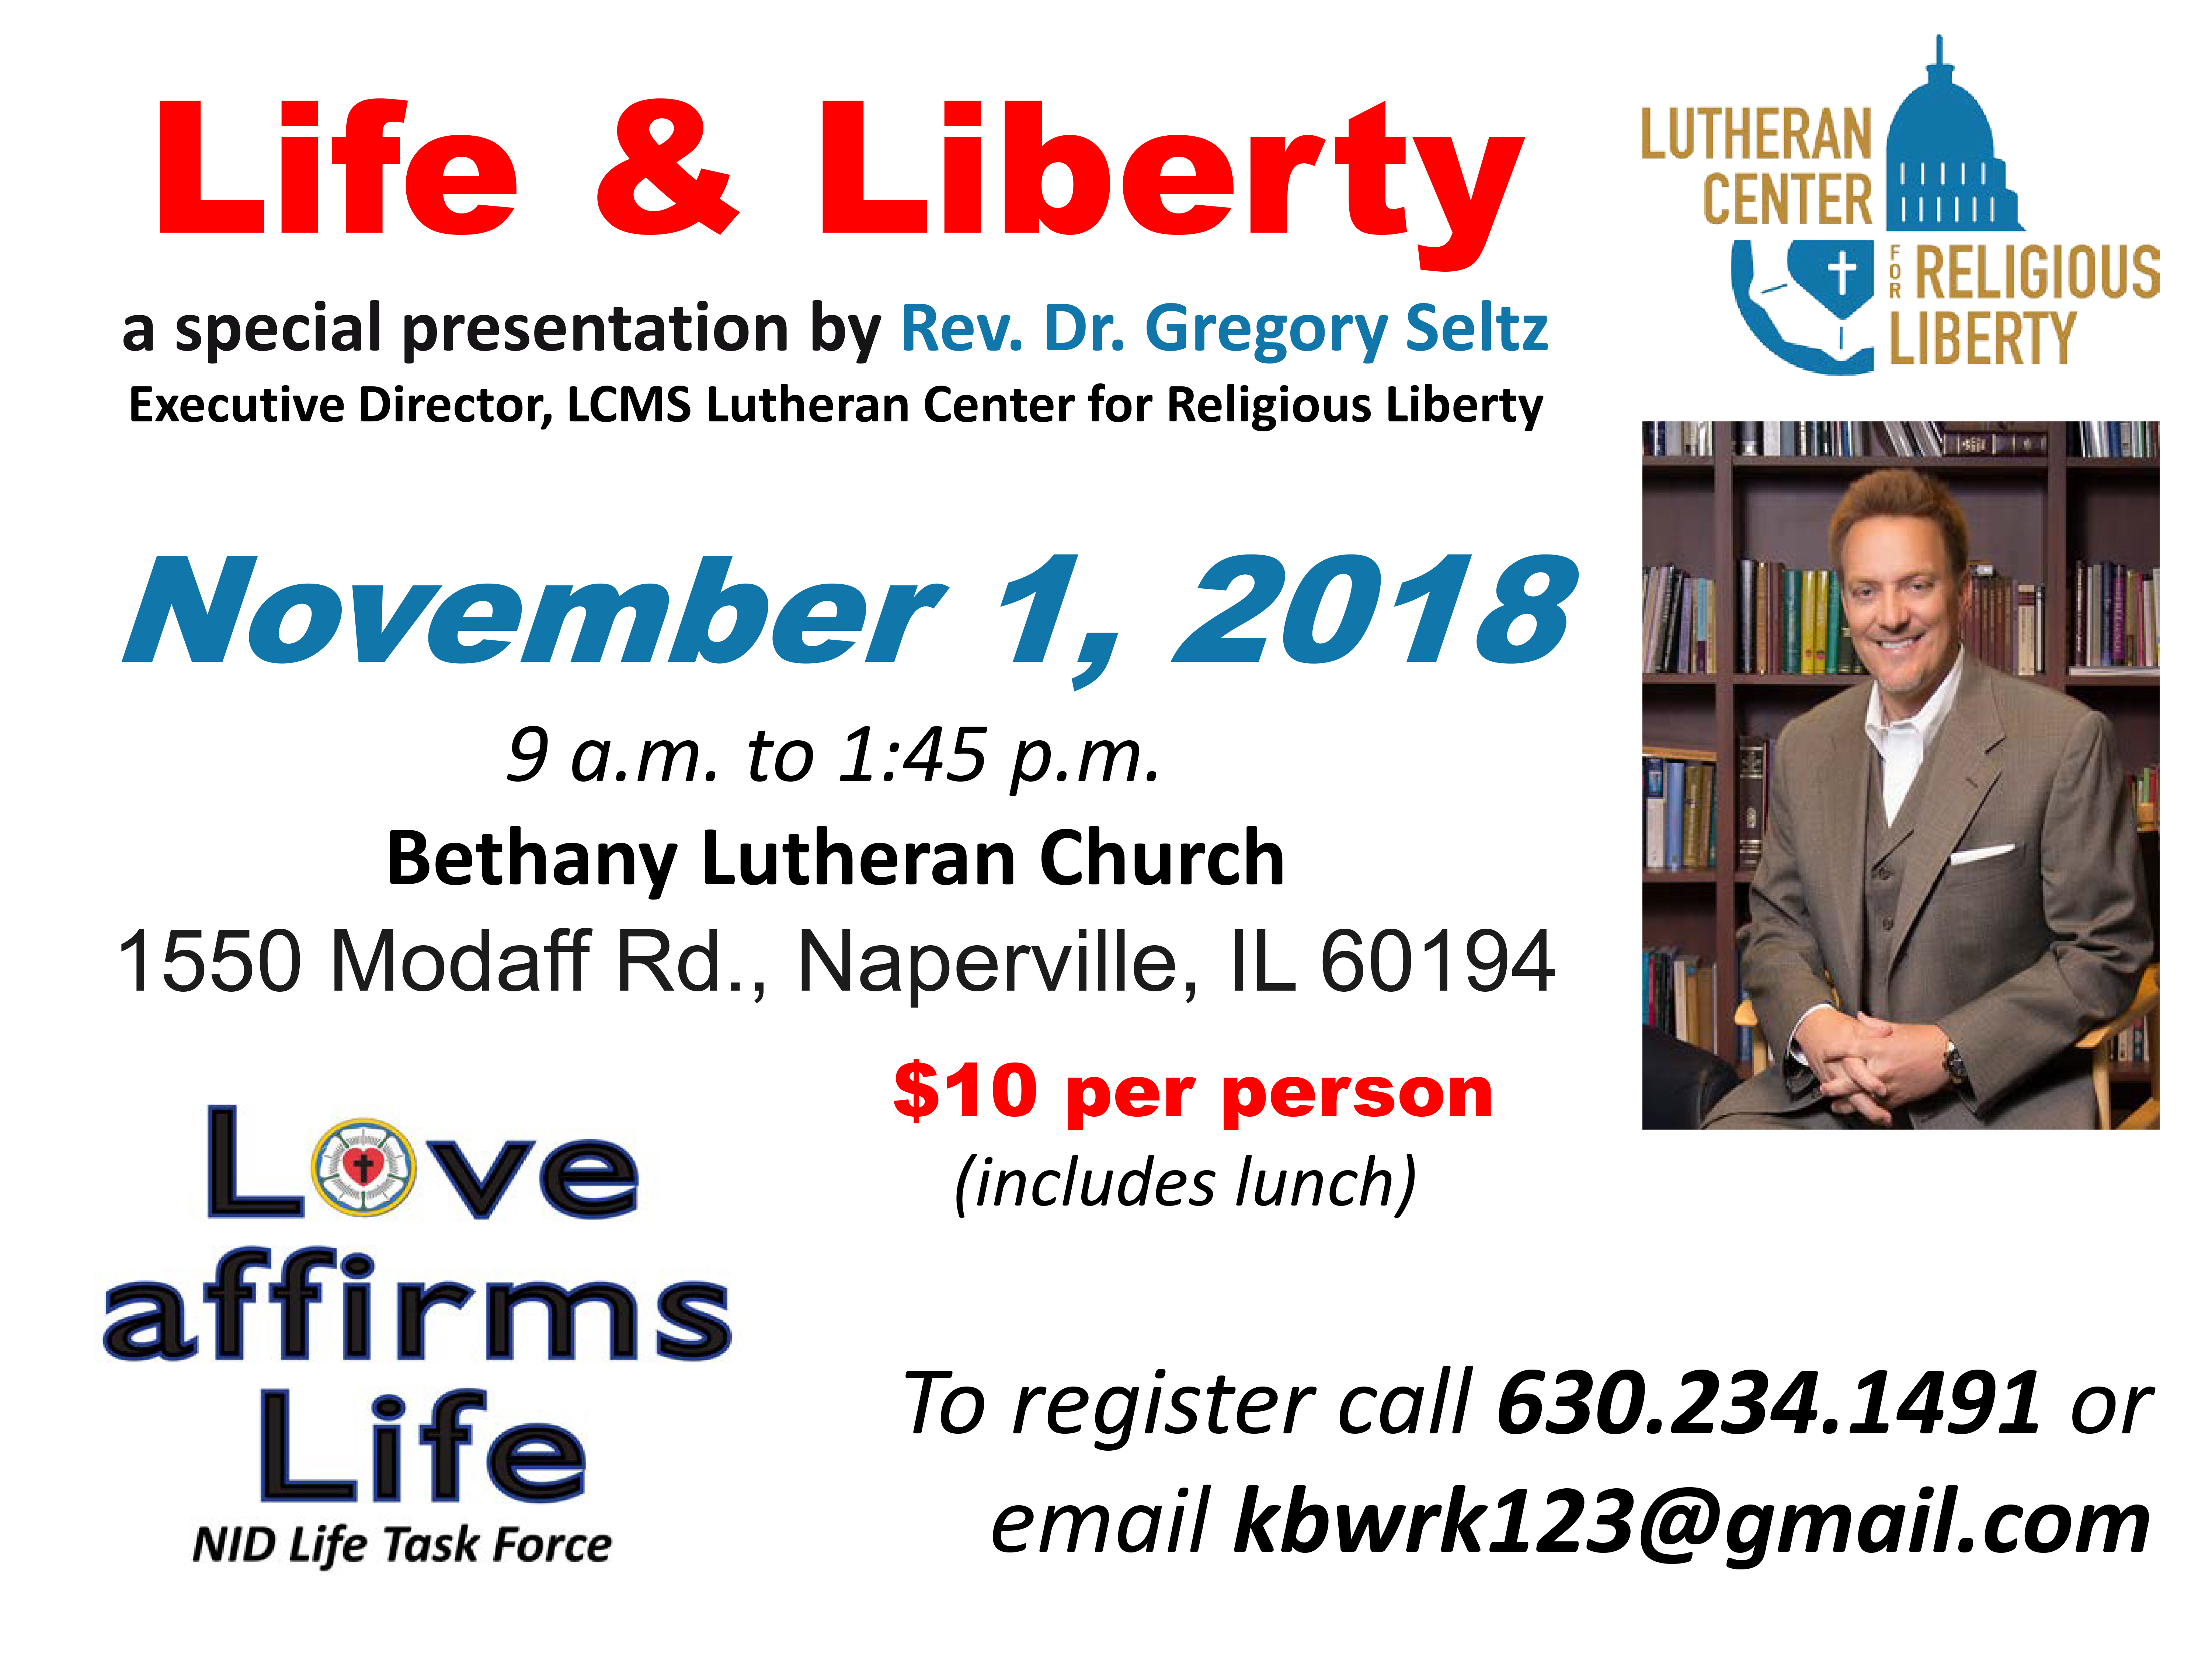 Lcms Church Year Calendar 2019 With Lutherans For Life And Liberty Event Rev Dr Gregory